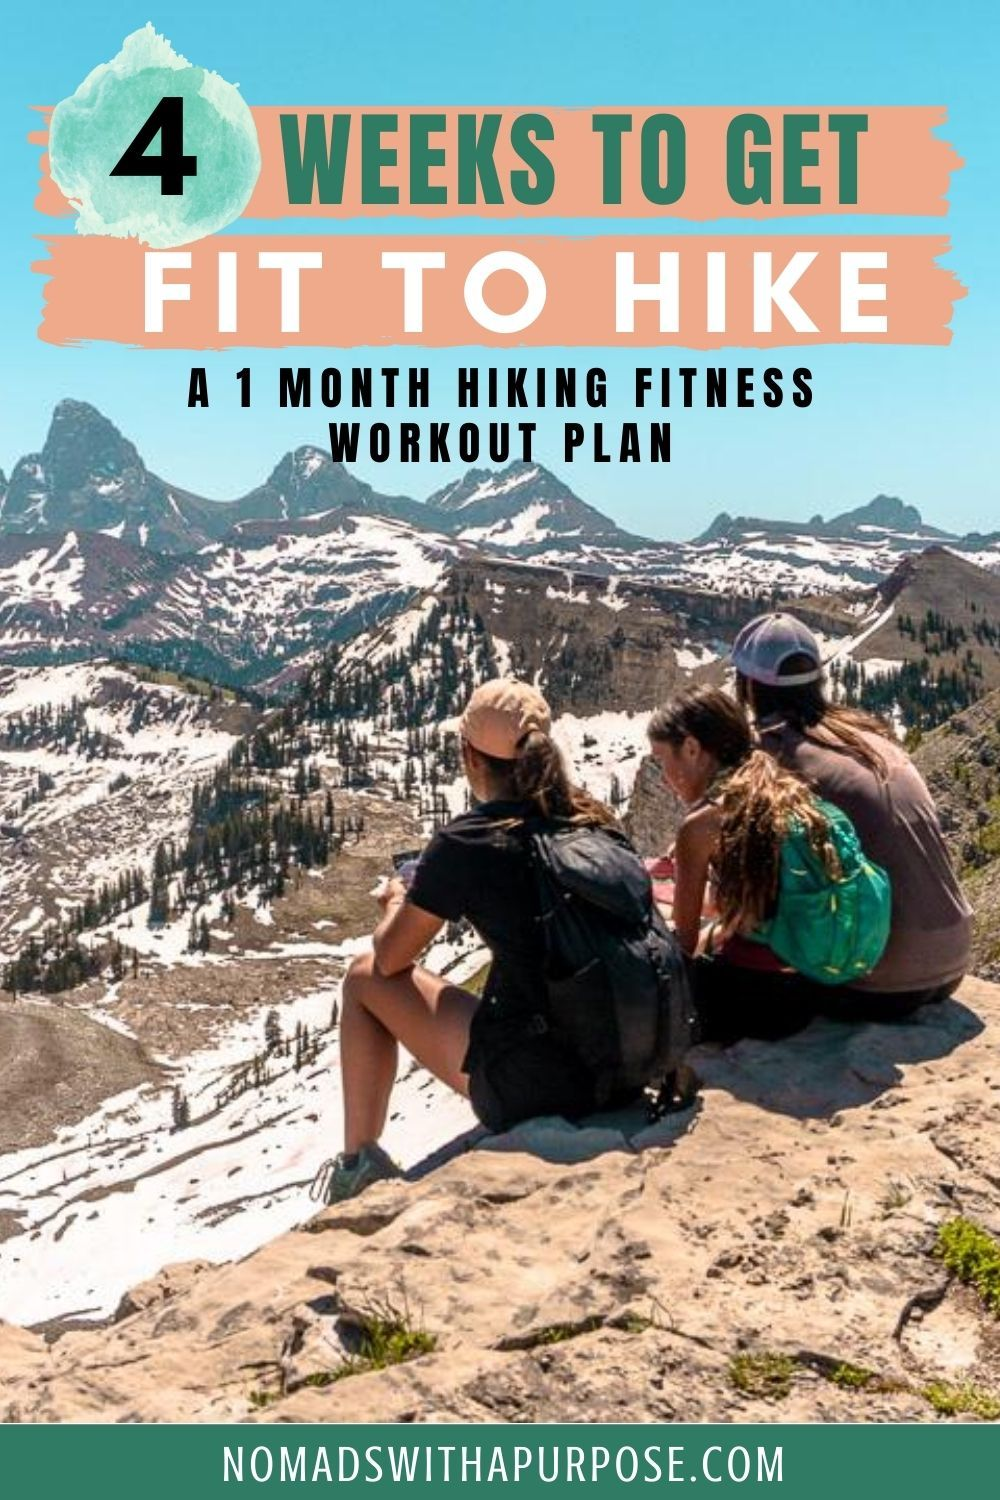 1 Month Hiking Fitness Workout Plan